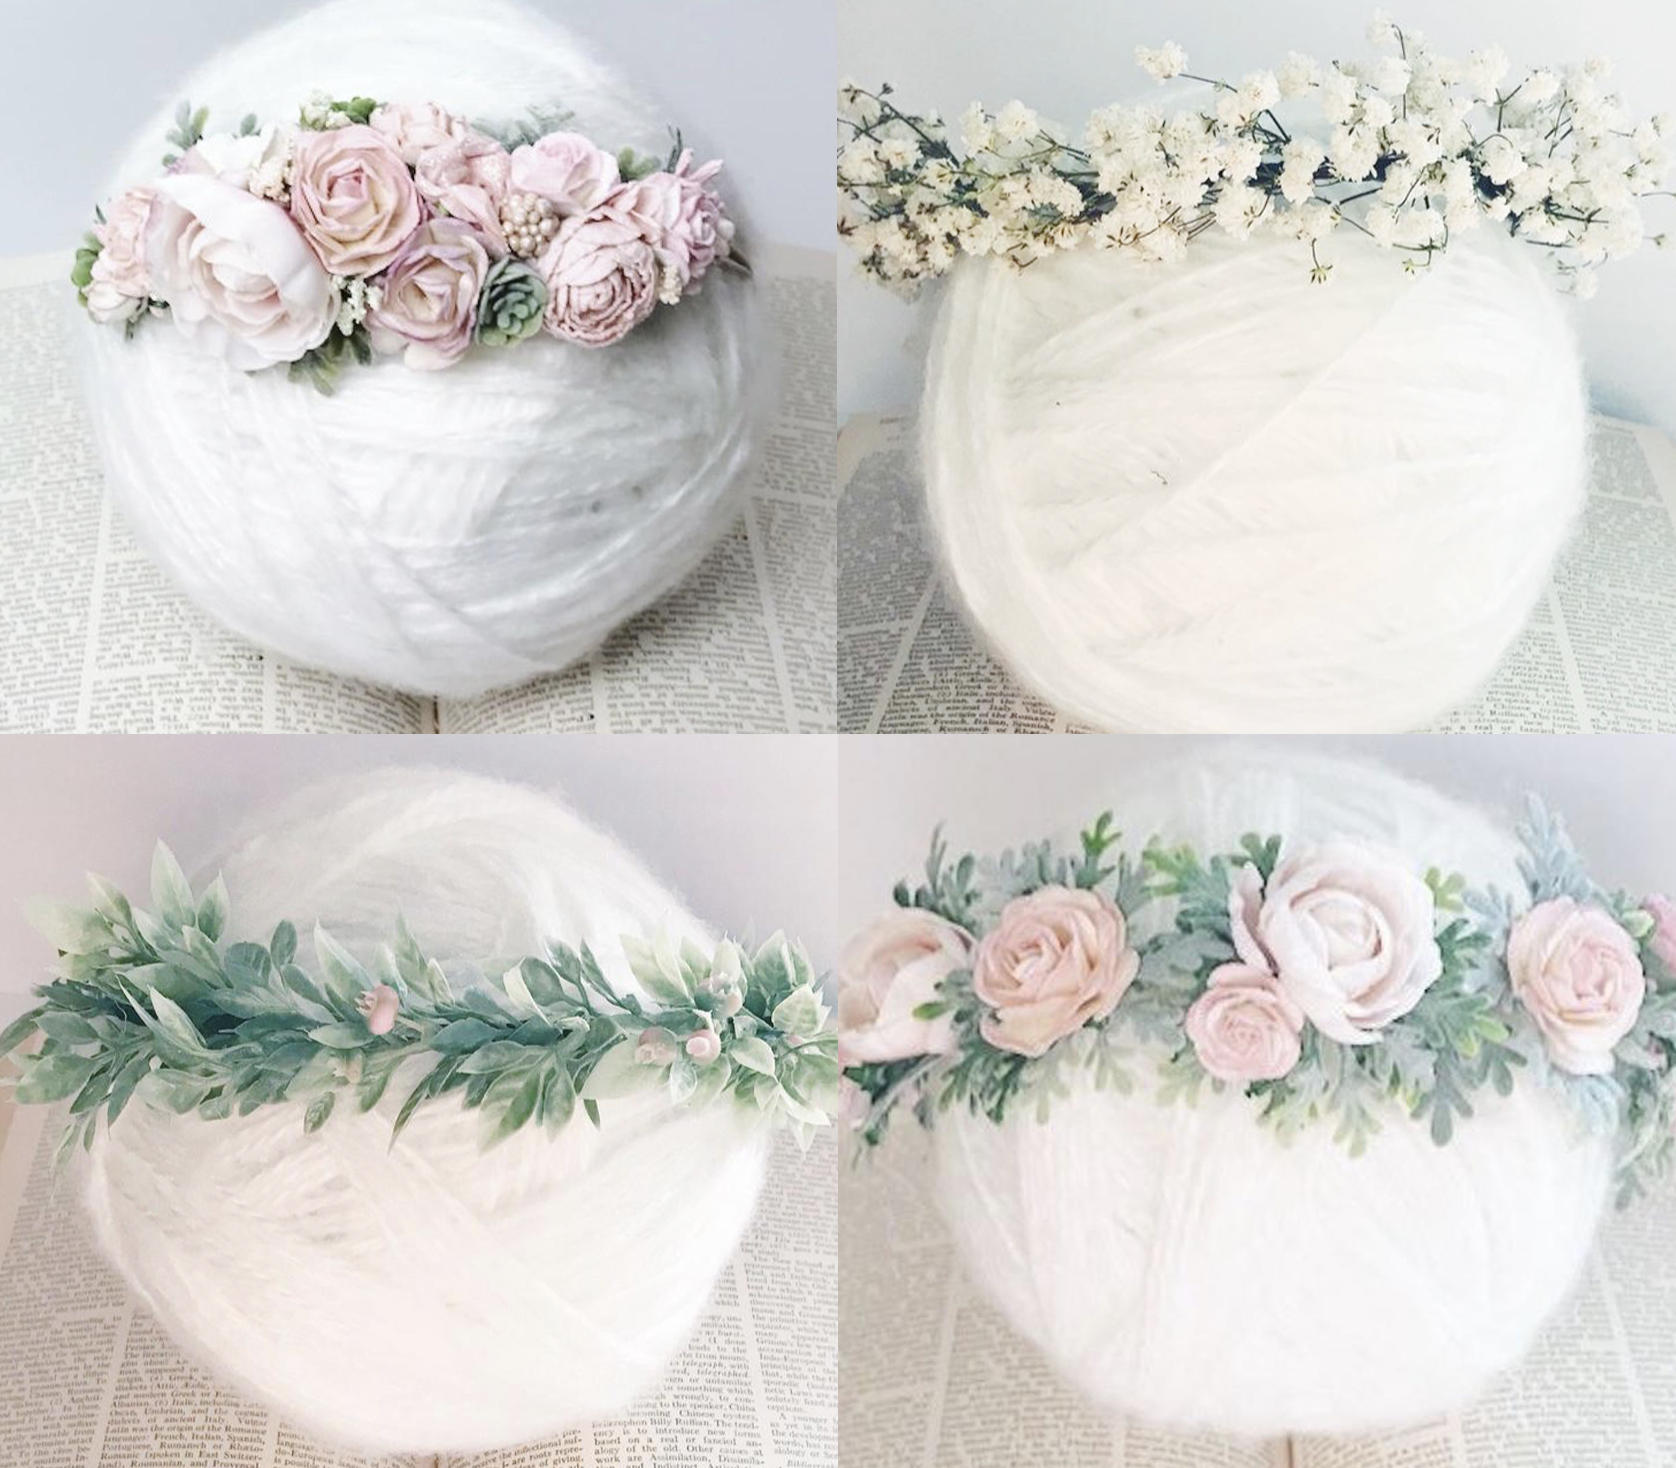 Here are the head  wreaths that will be available for clients to use this year should they wish! Aren't they stunning?!?